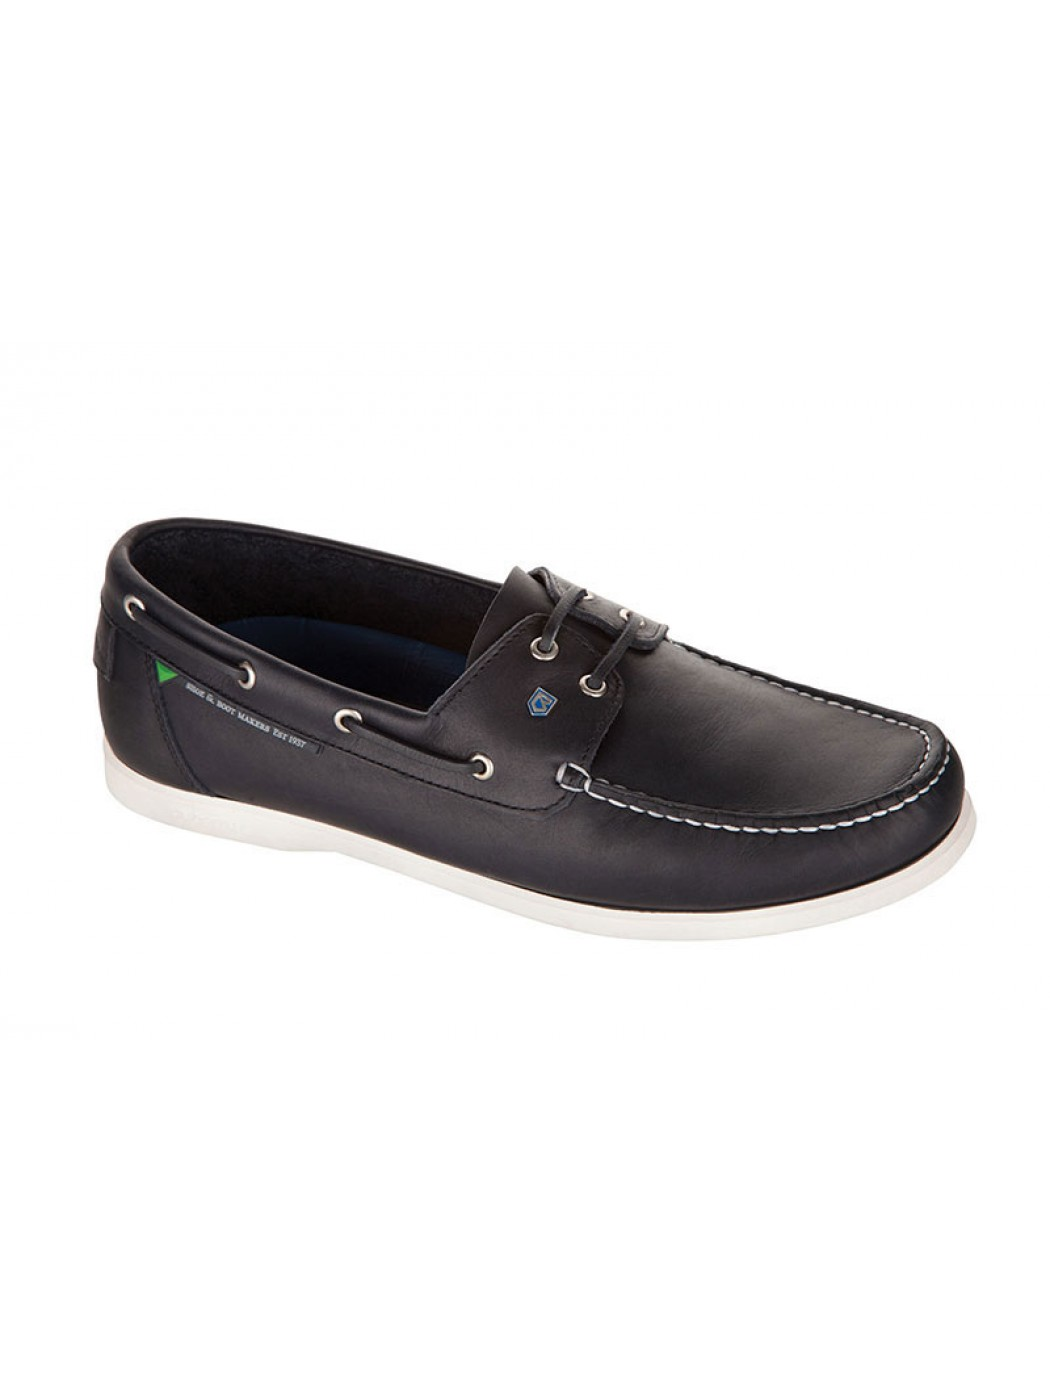 windward-mens-decks-navy